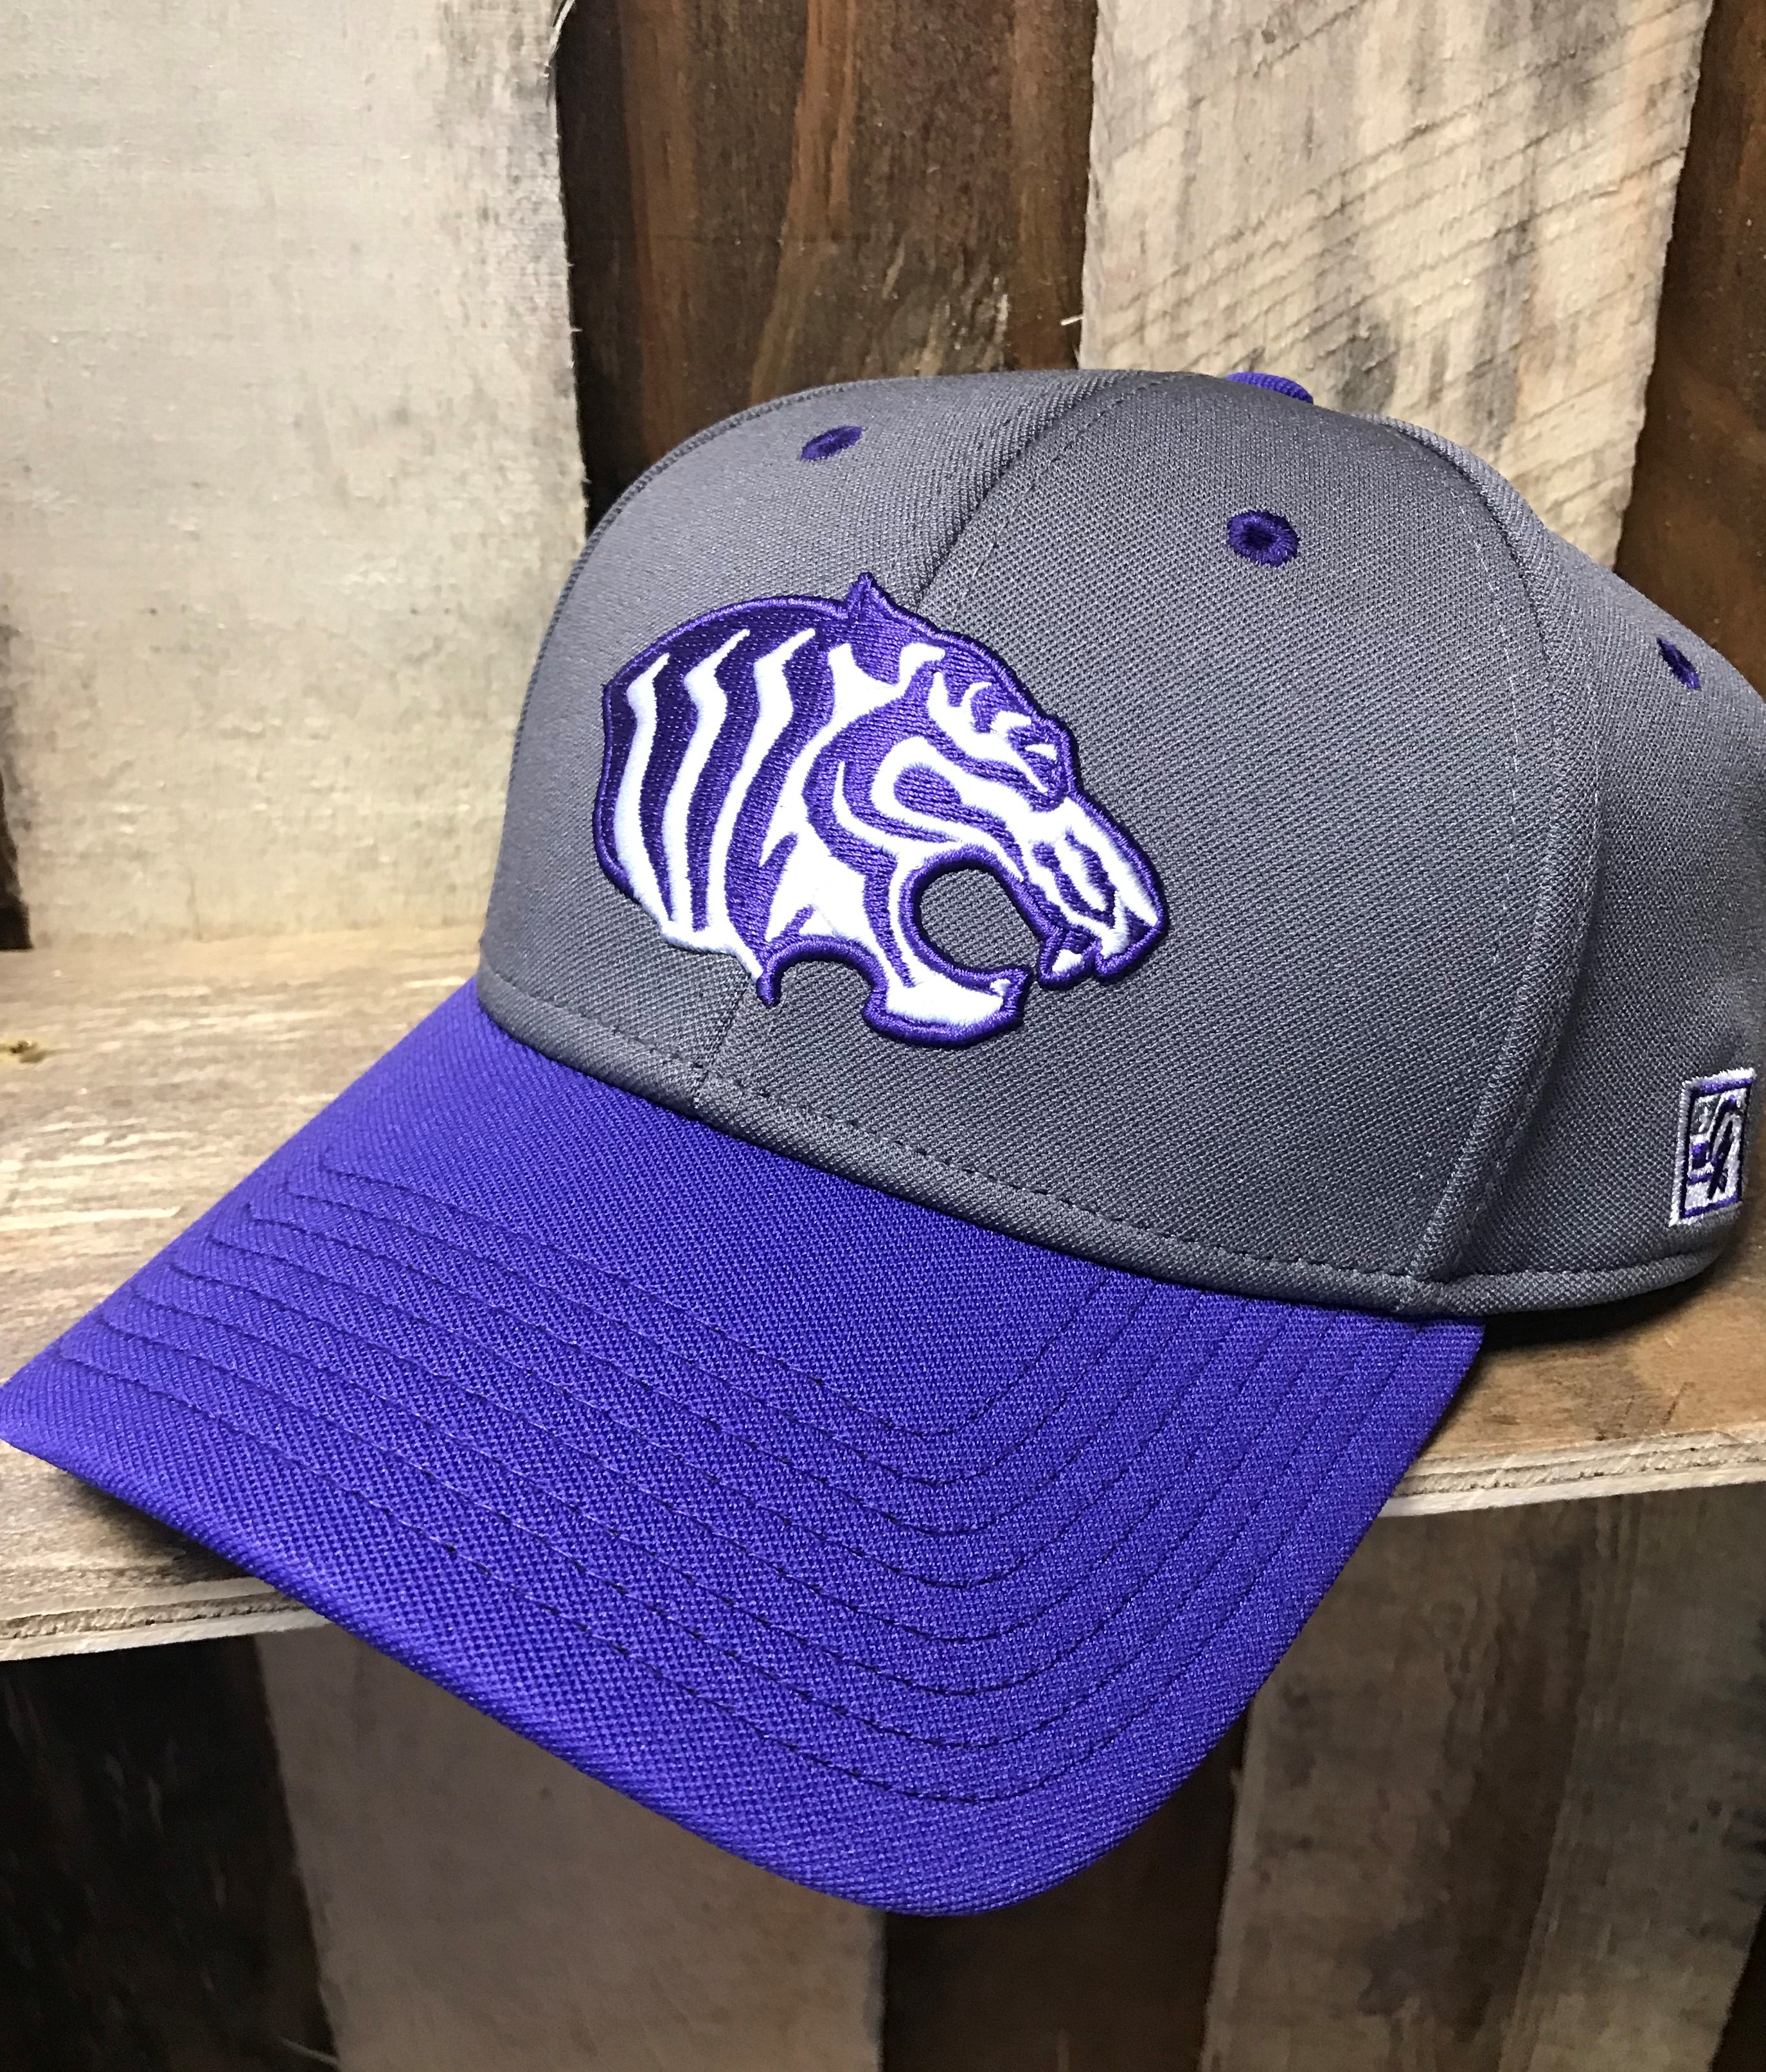 OUACHITA TIGER LOGO HAT